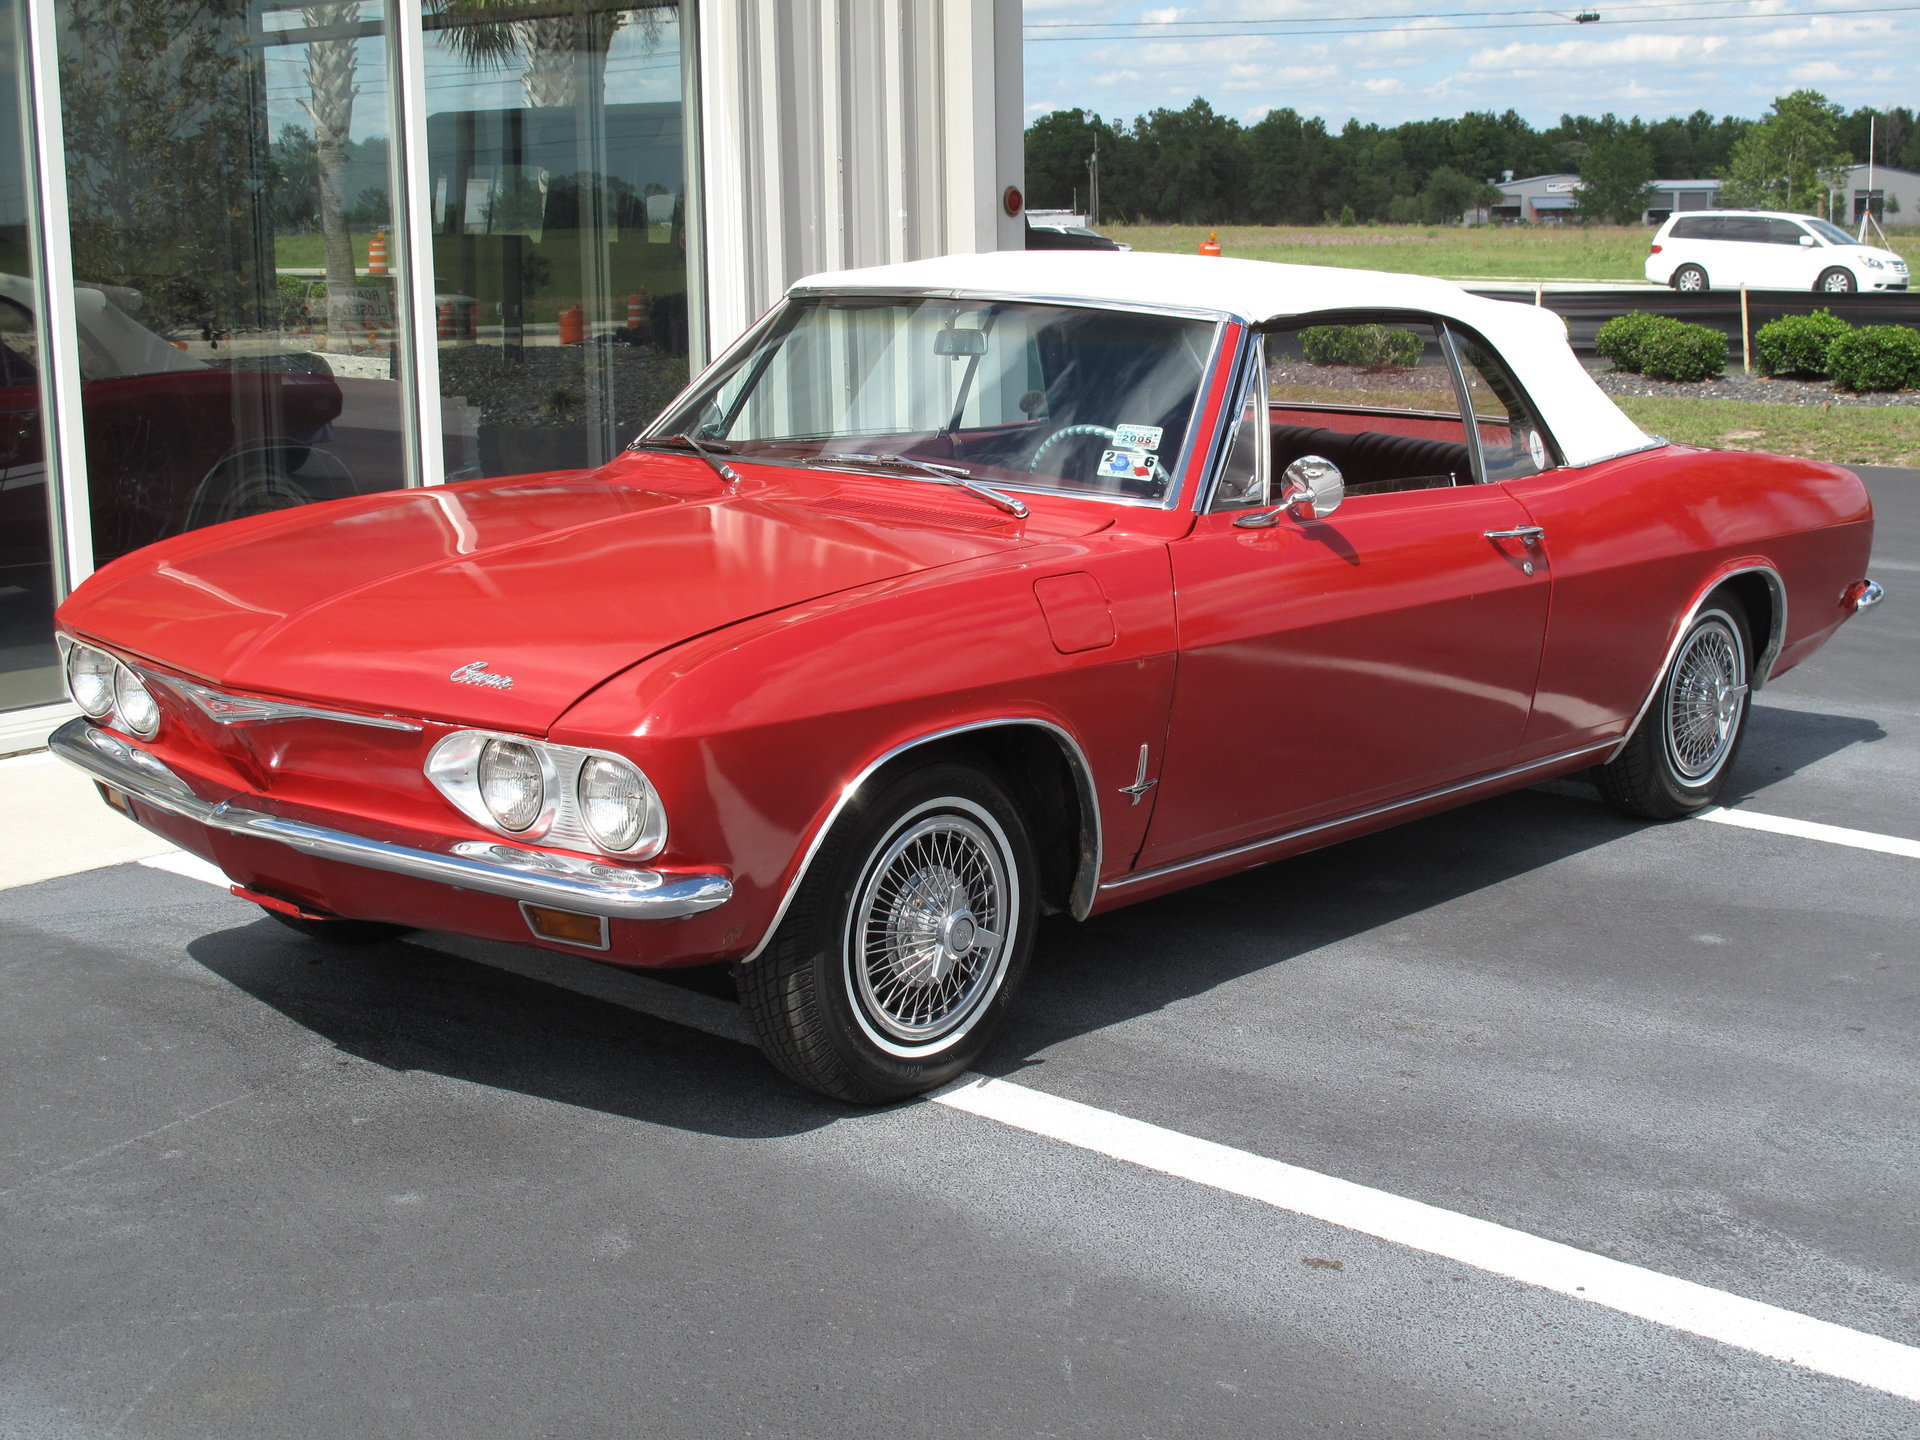 15232f7afccf6 hd 1965 chevrolet corvair monza